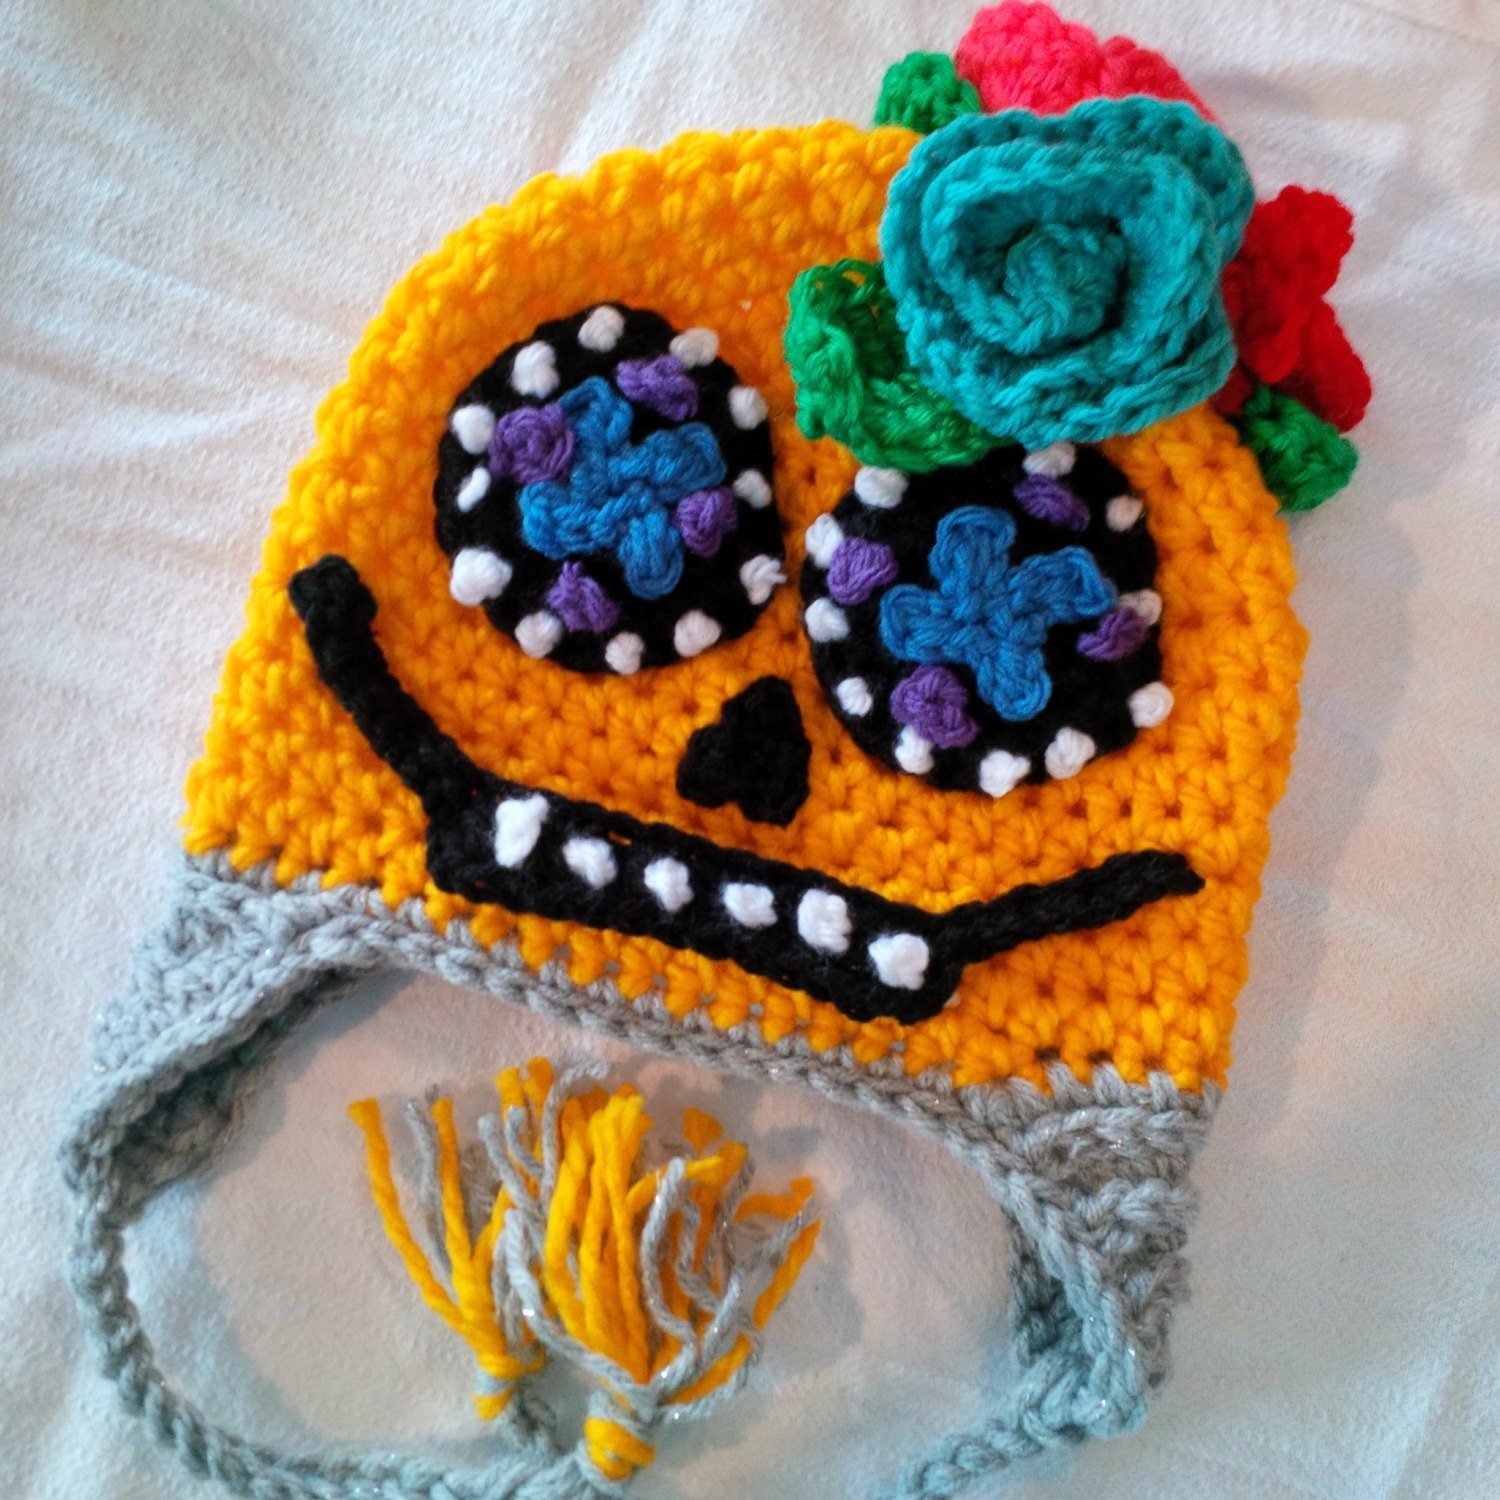 Beautiful Crochet Sugar Skull Hat Pattern Crochet Sugar Skull Of Incredible 47 Pictures Crochet Sugar Skull